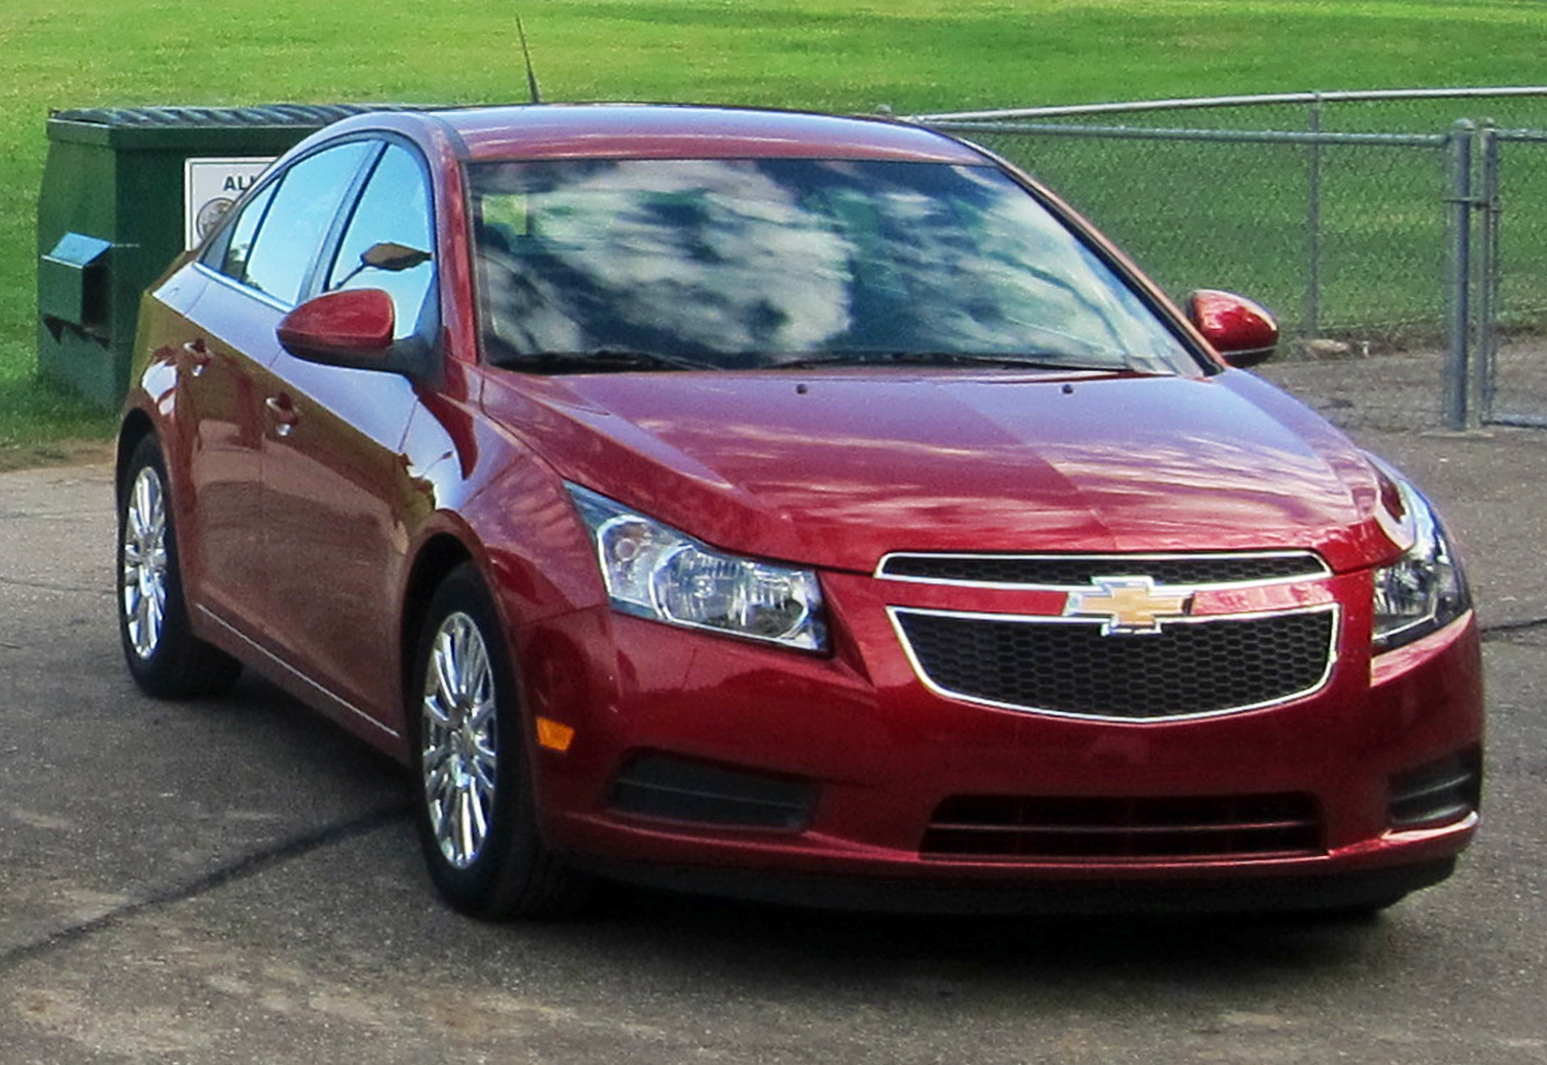 Chevy Cruze Turbo Diesel Fuel Economy Rated at 46MPG